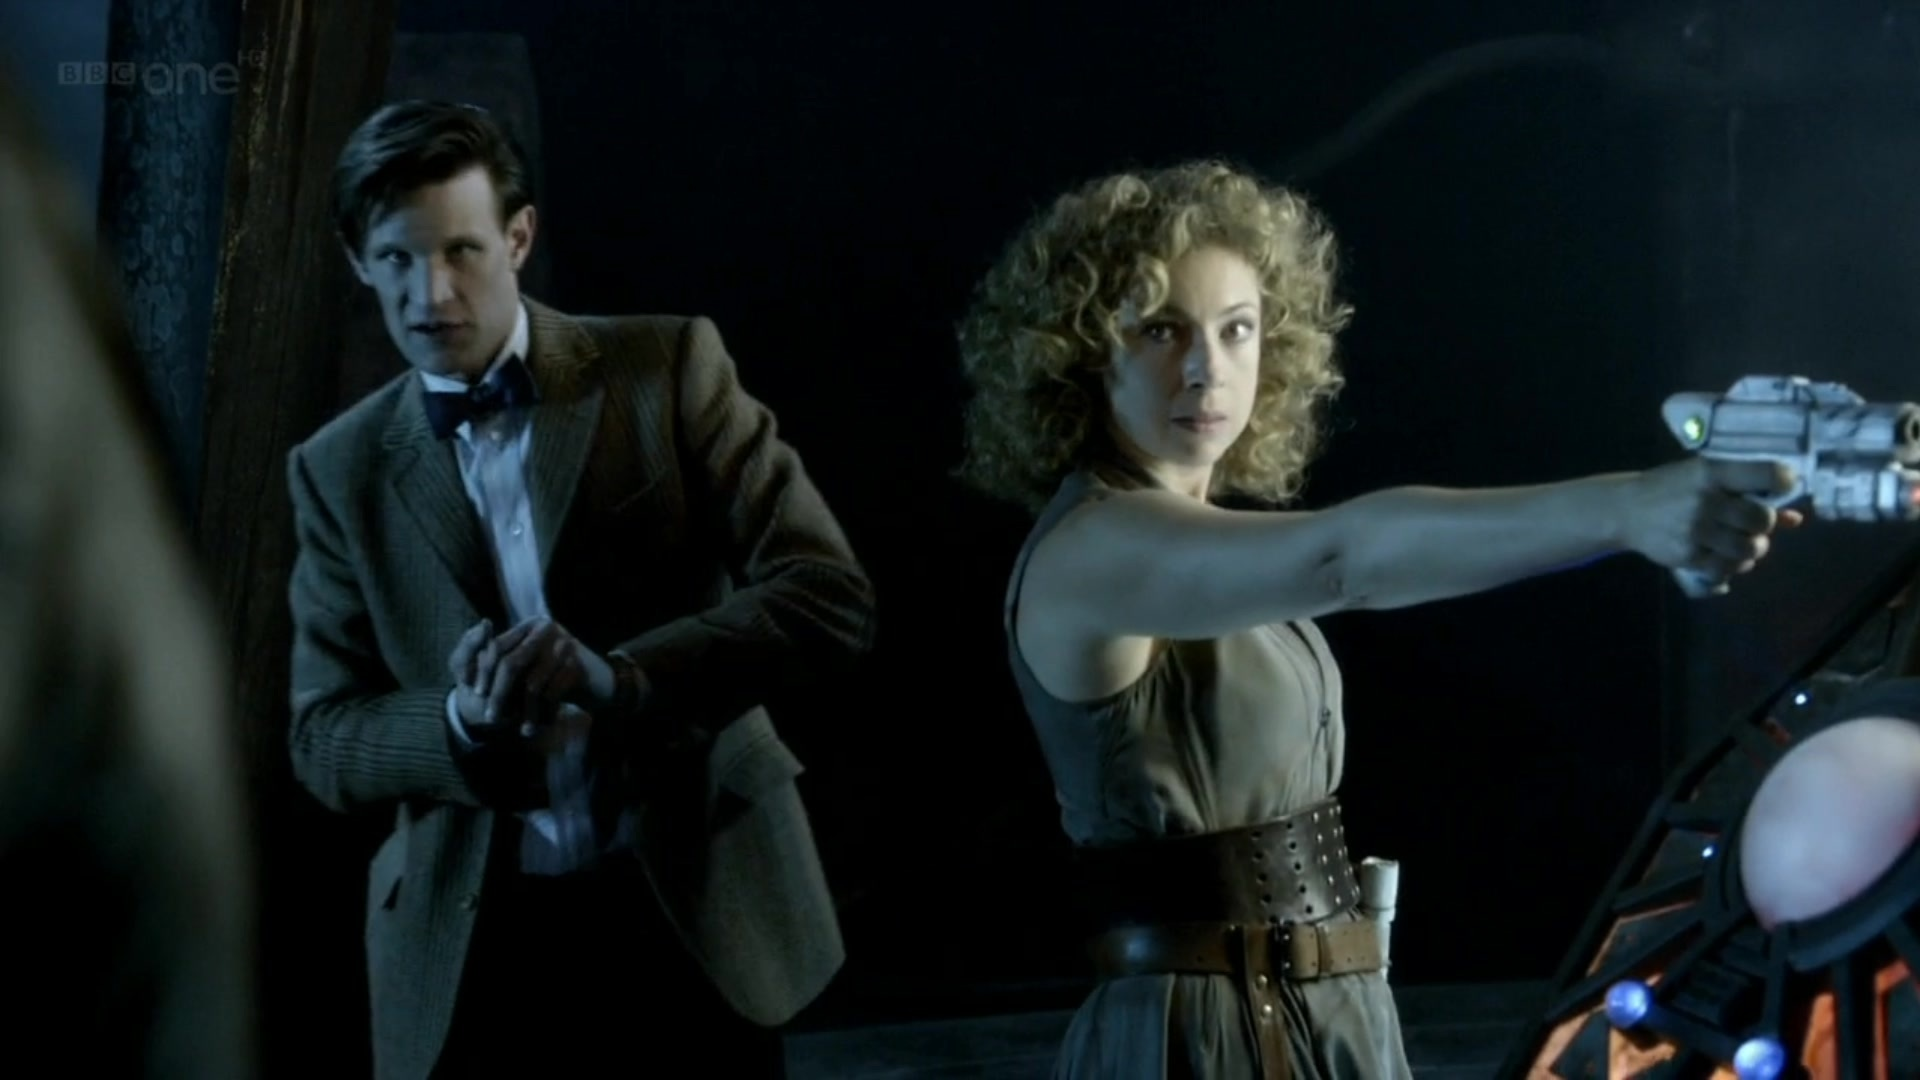 river song and the doctor flirting Blaine anderson is preparing to embark on a new solo chapter of his life: entering college to those around him, he might appear to be just another ordinary eighteen-year-old, but when his loving parents are none other than the doctor--earth's constant saviour and last of the time lords--and river song--a human weapon.